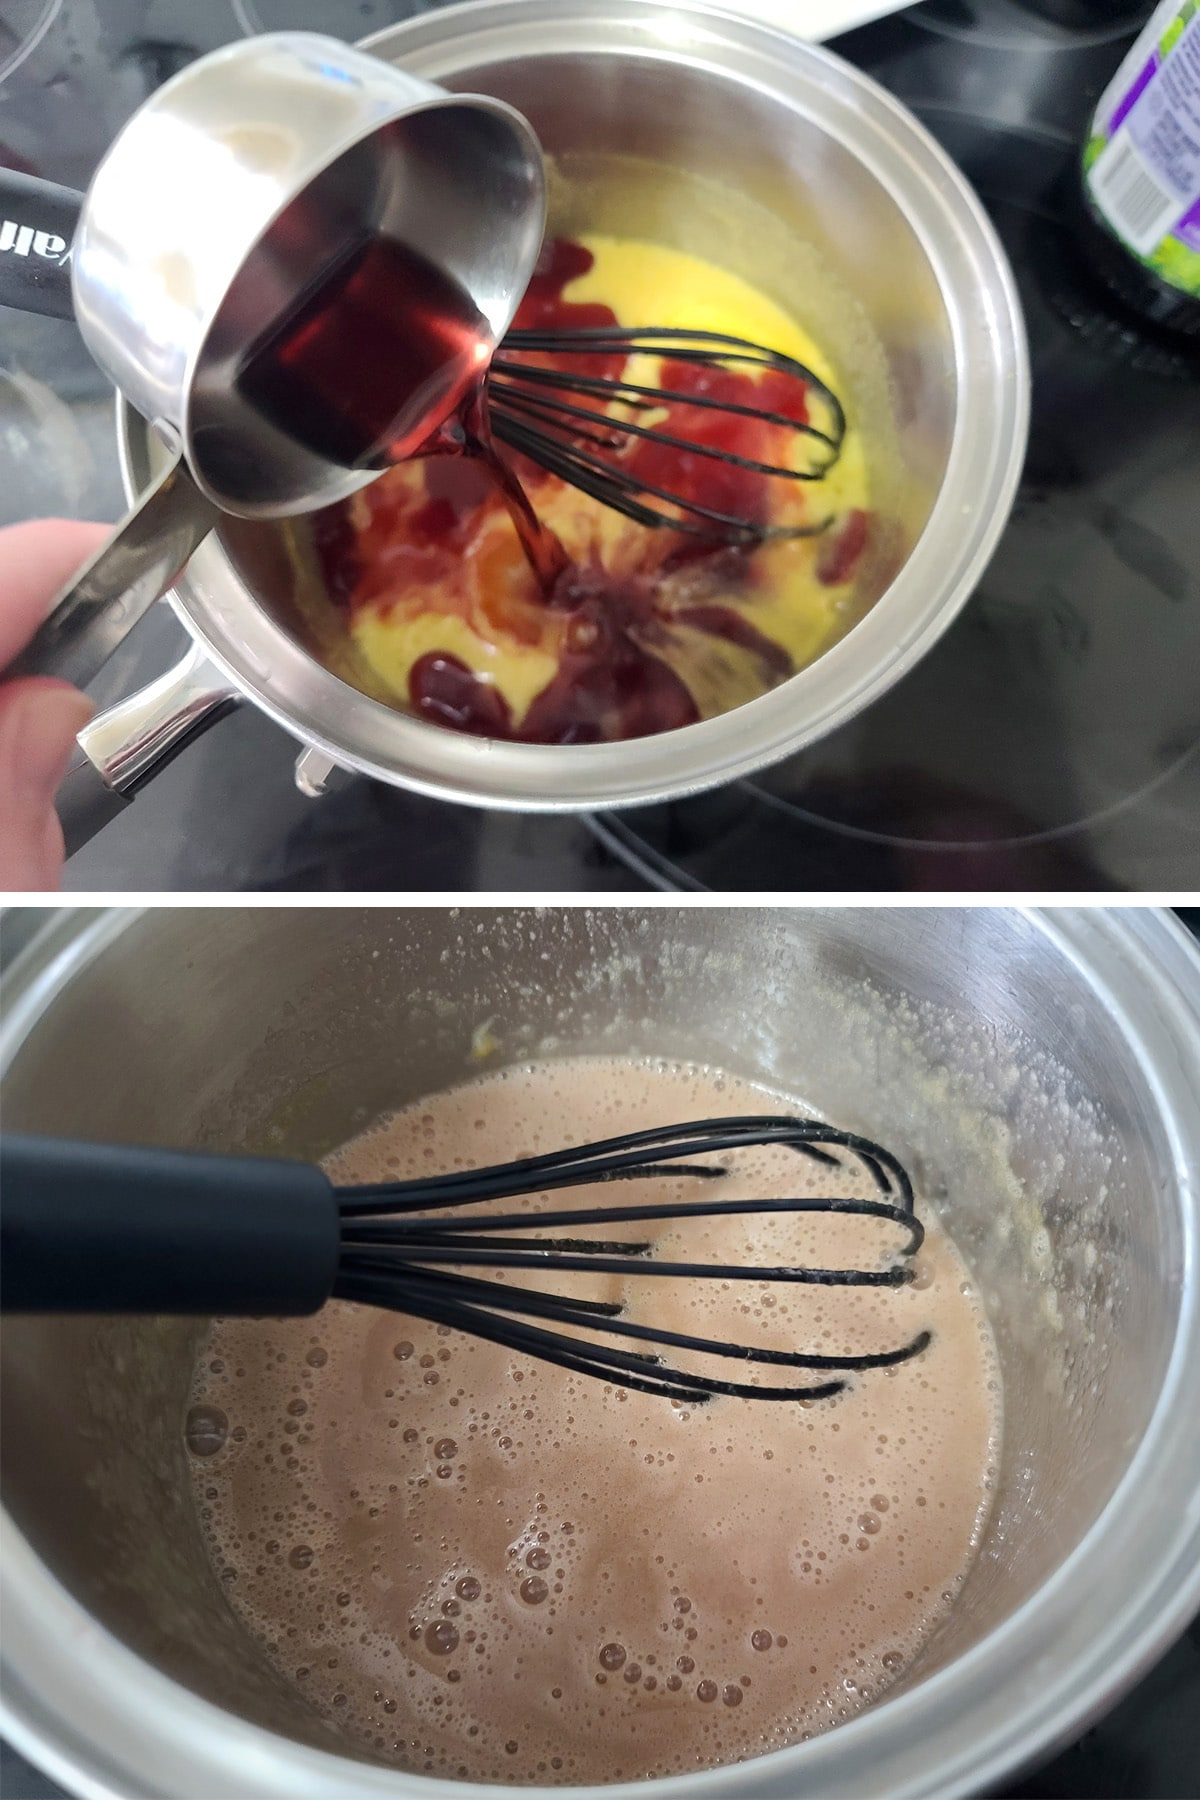 Grape juice being added to the pot and whisked in.